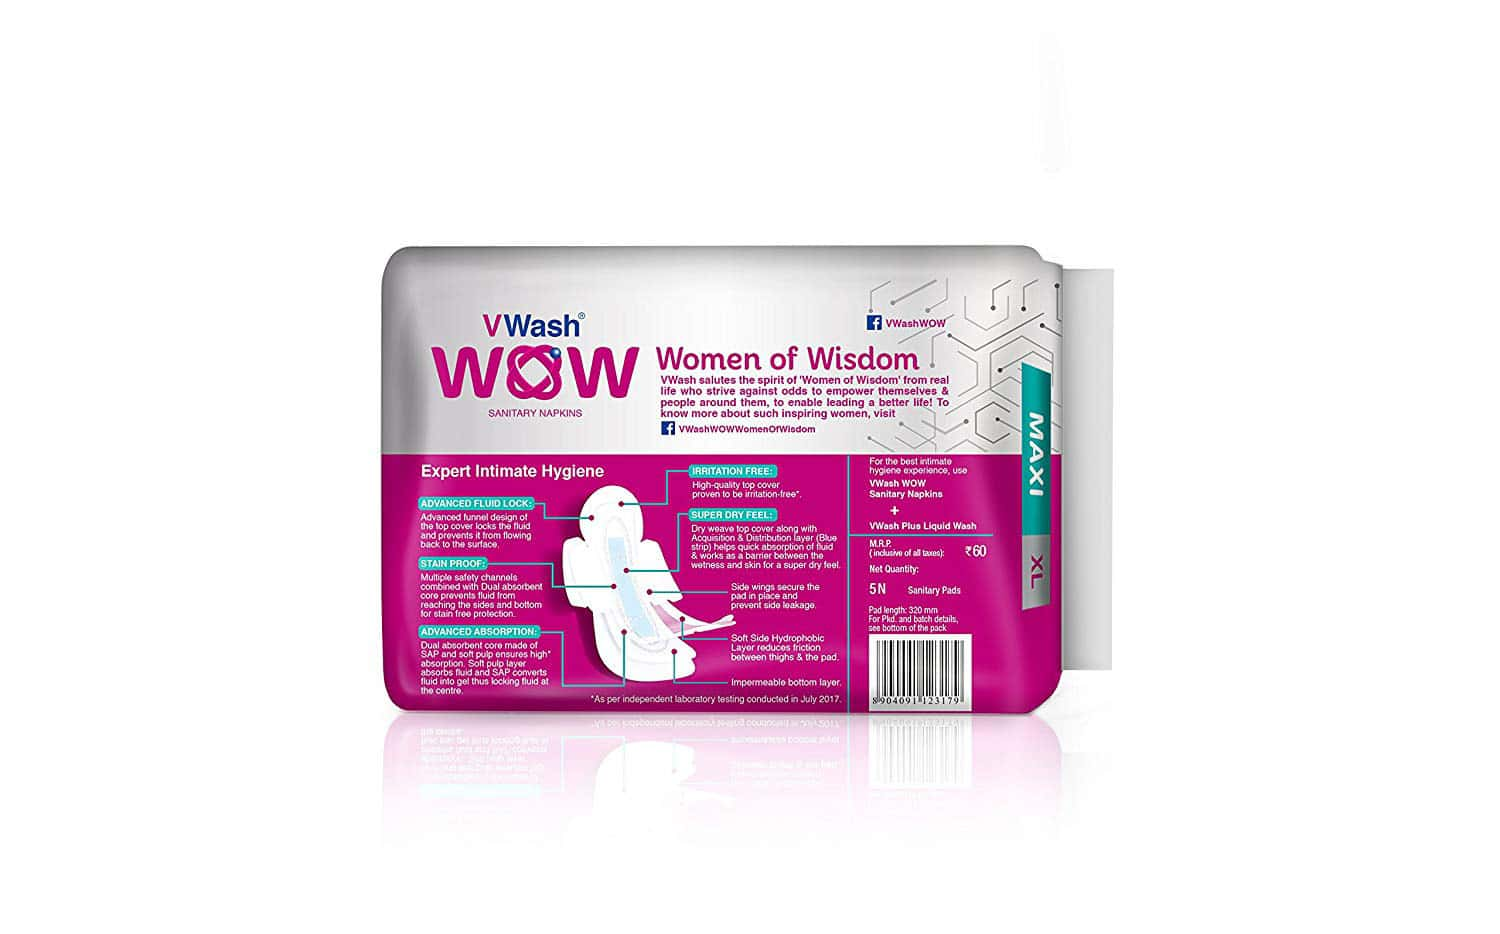 Vwash Wow Maxi Size Xl Sanitary Pads Pack Of 30 (packs Of 6x5)